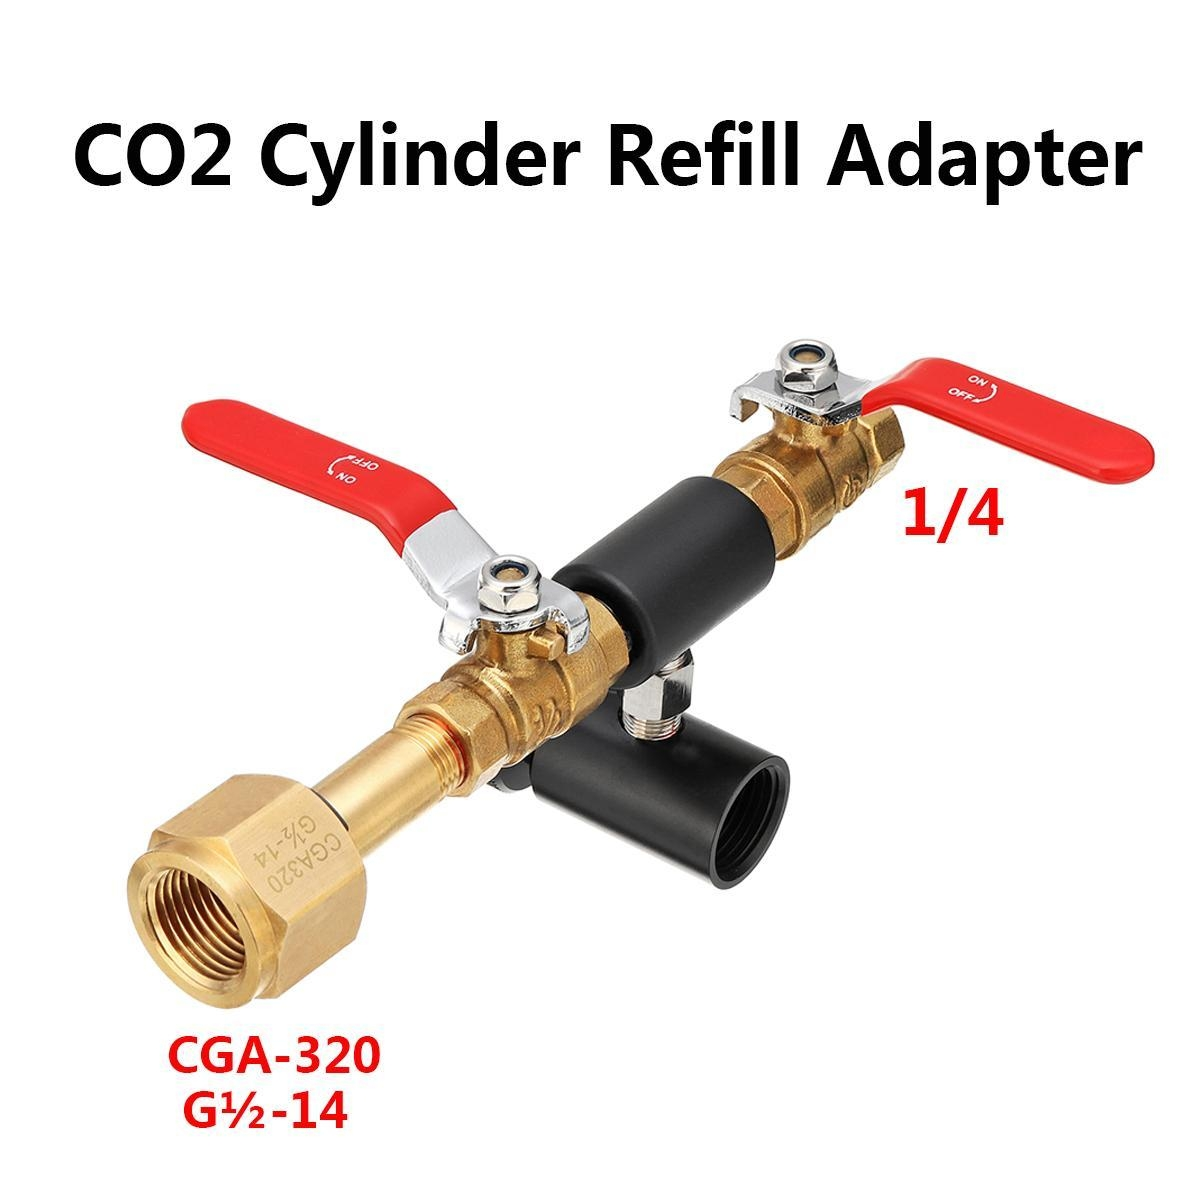 Generic CO2 Cylinder Refill Adapter for SodaStream bottle